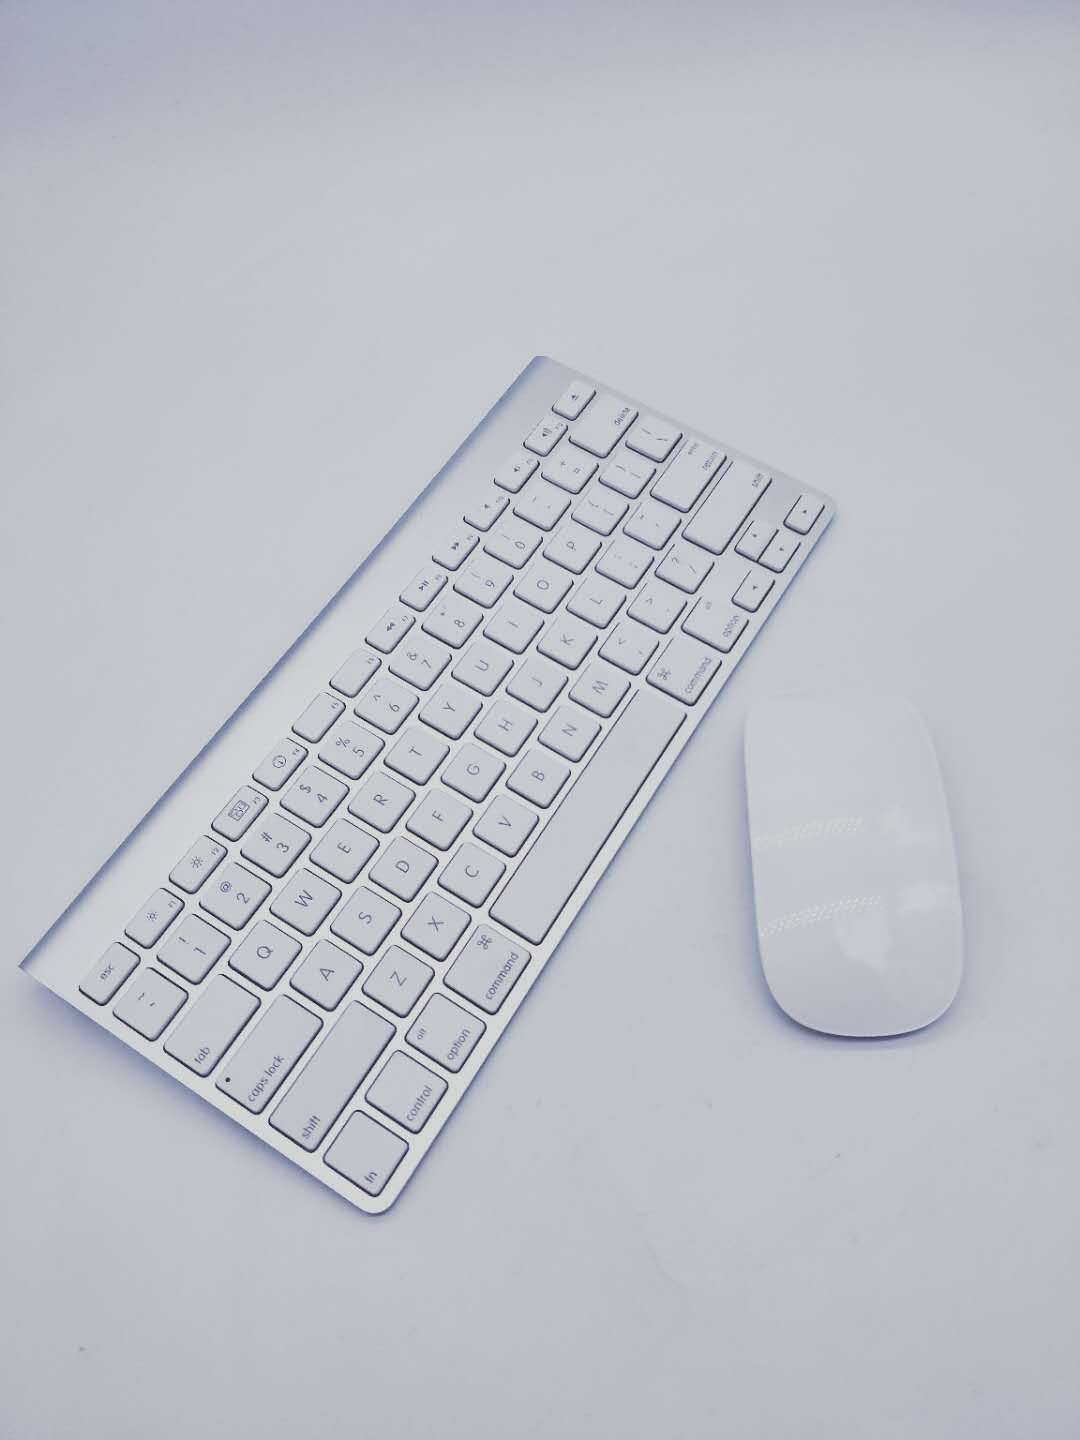 Genuine A1296/A1314 Wireless Mouse/Keyboard For Apple - Bluetooth A1296/A1314 Cleaning And Testing Battery Not Included